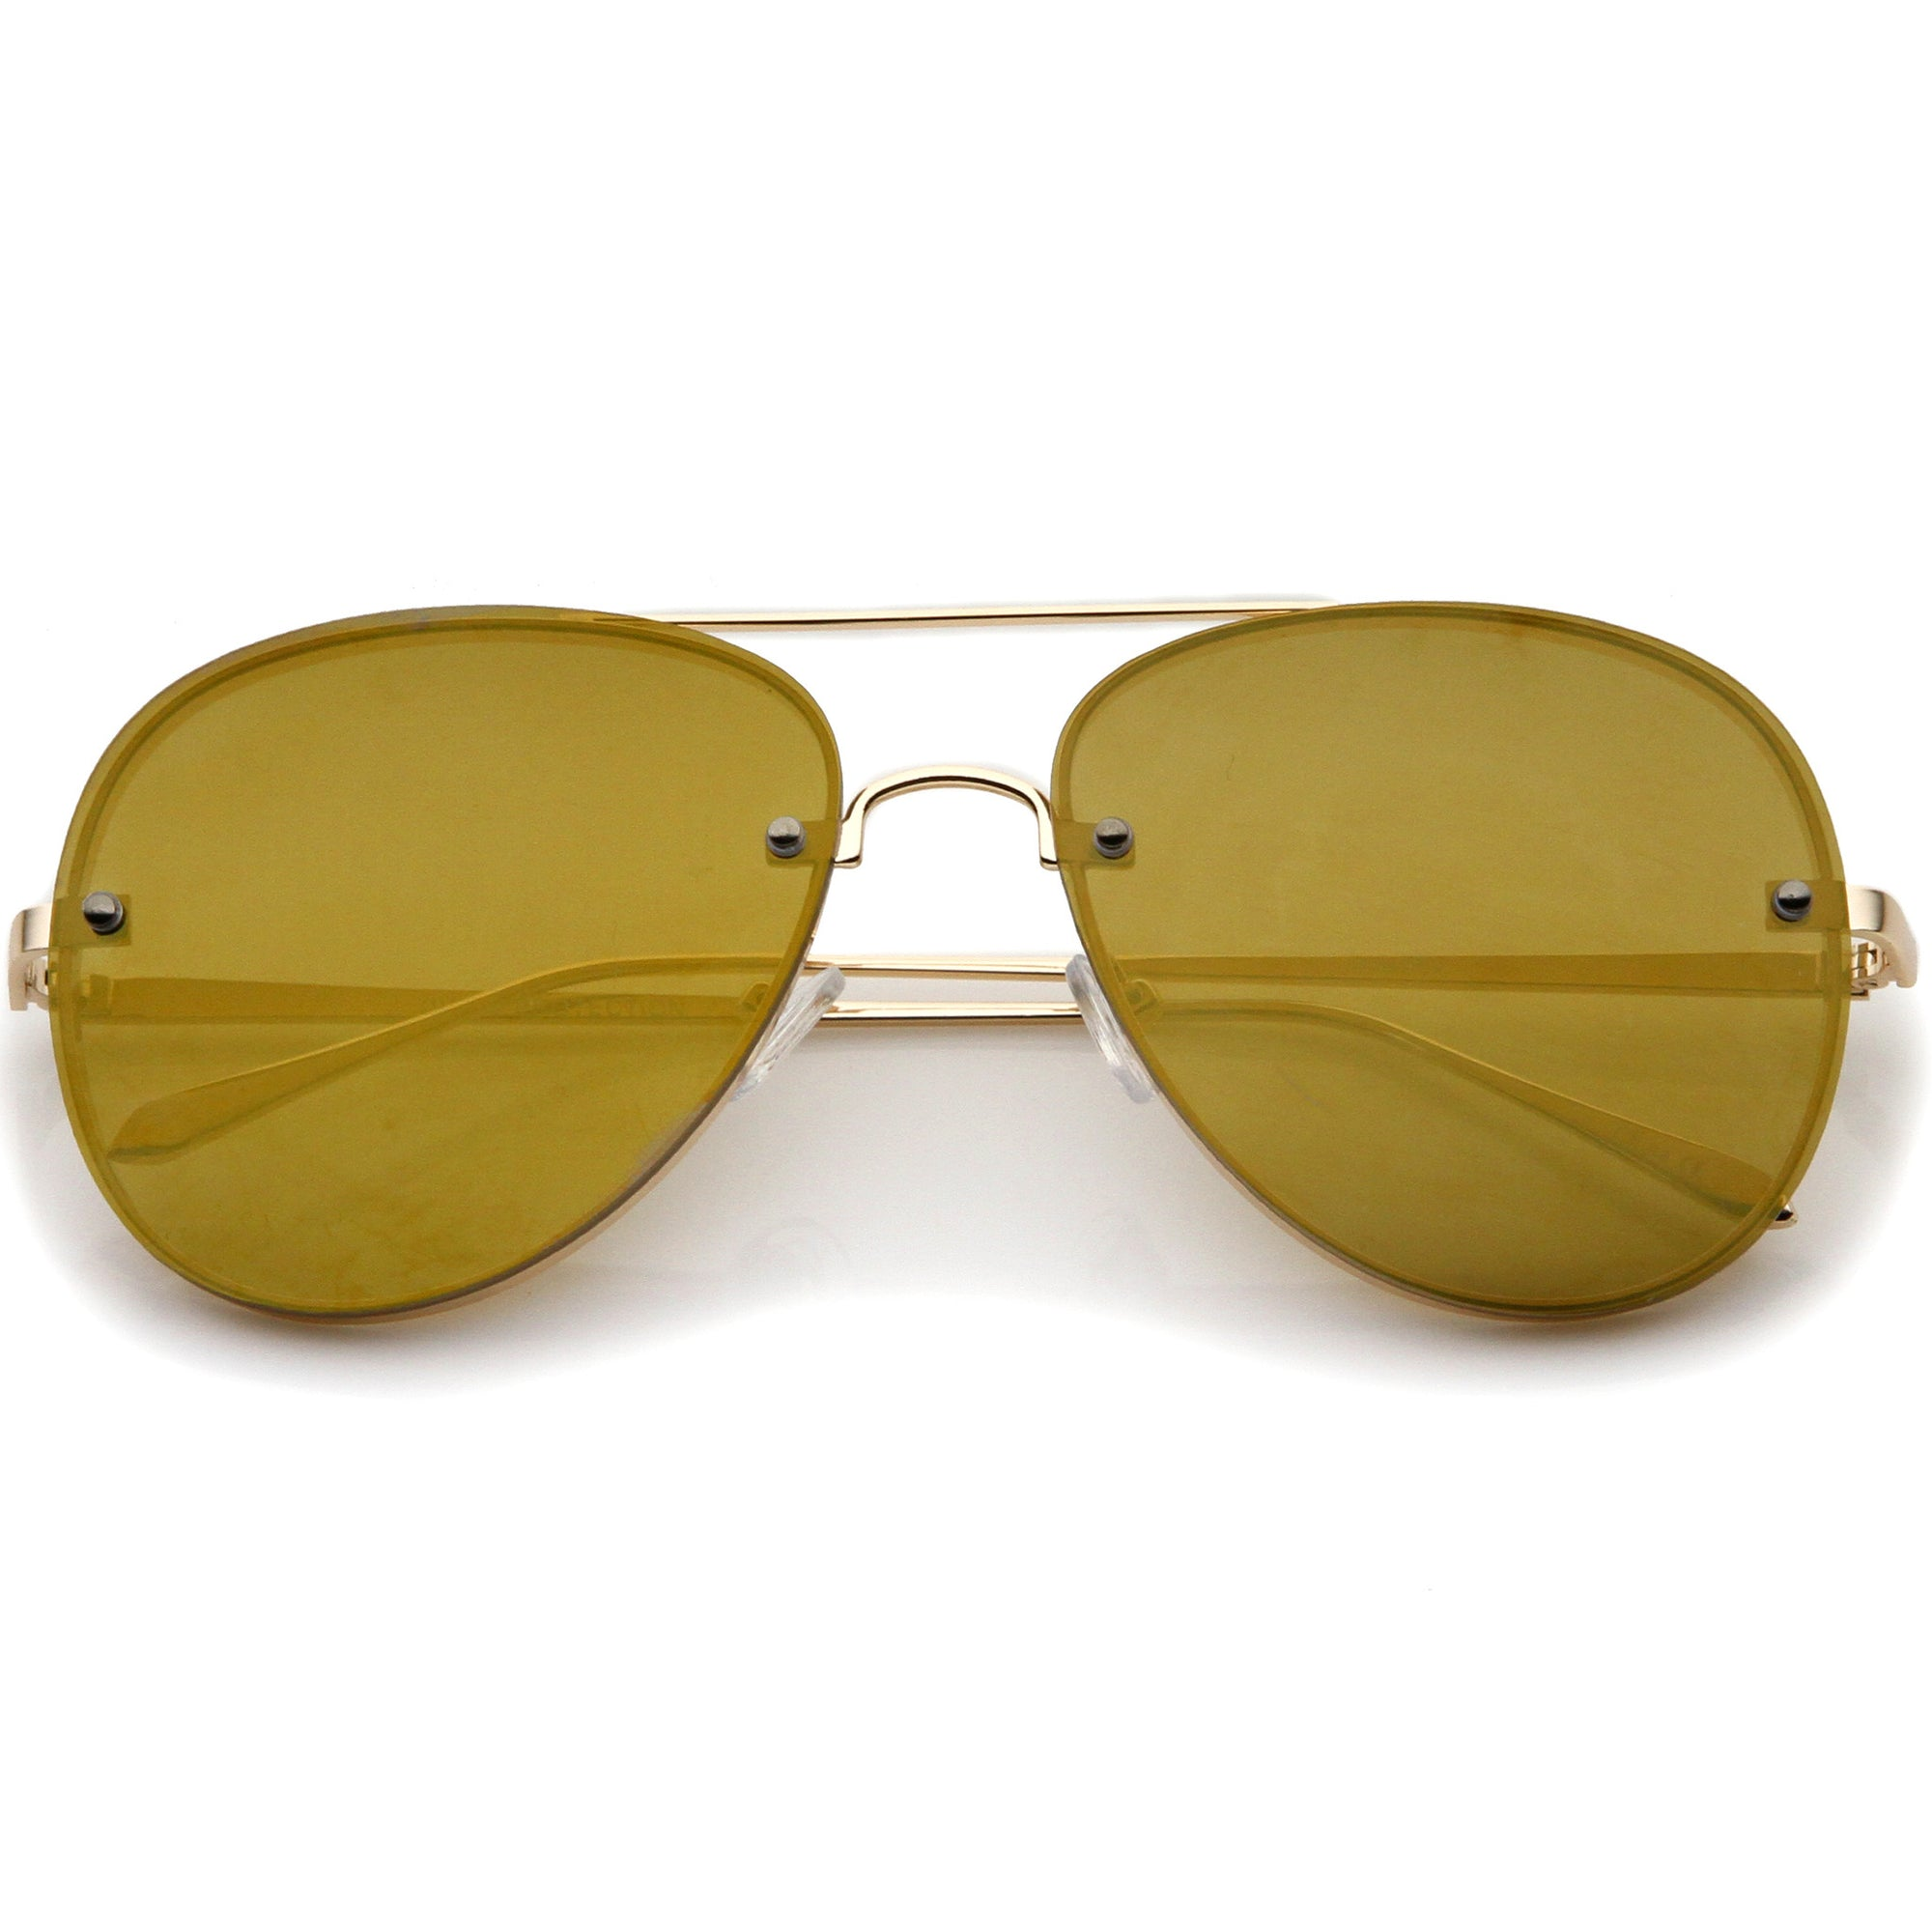 04e58da6f83b ... Modern Rimless Mirrored Flat Lens Aviator Sunglasses 60mm A849 · Gold  Gold Mirror